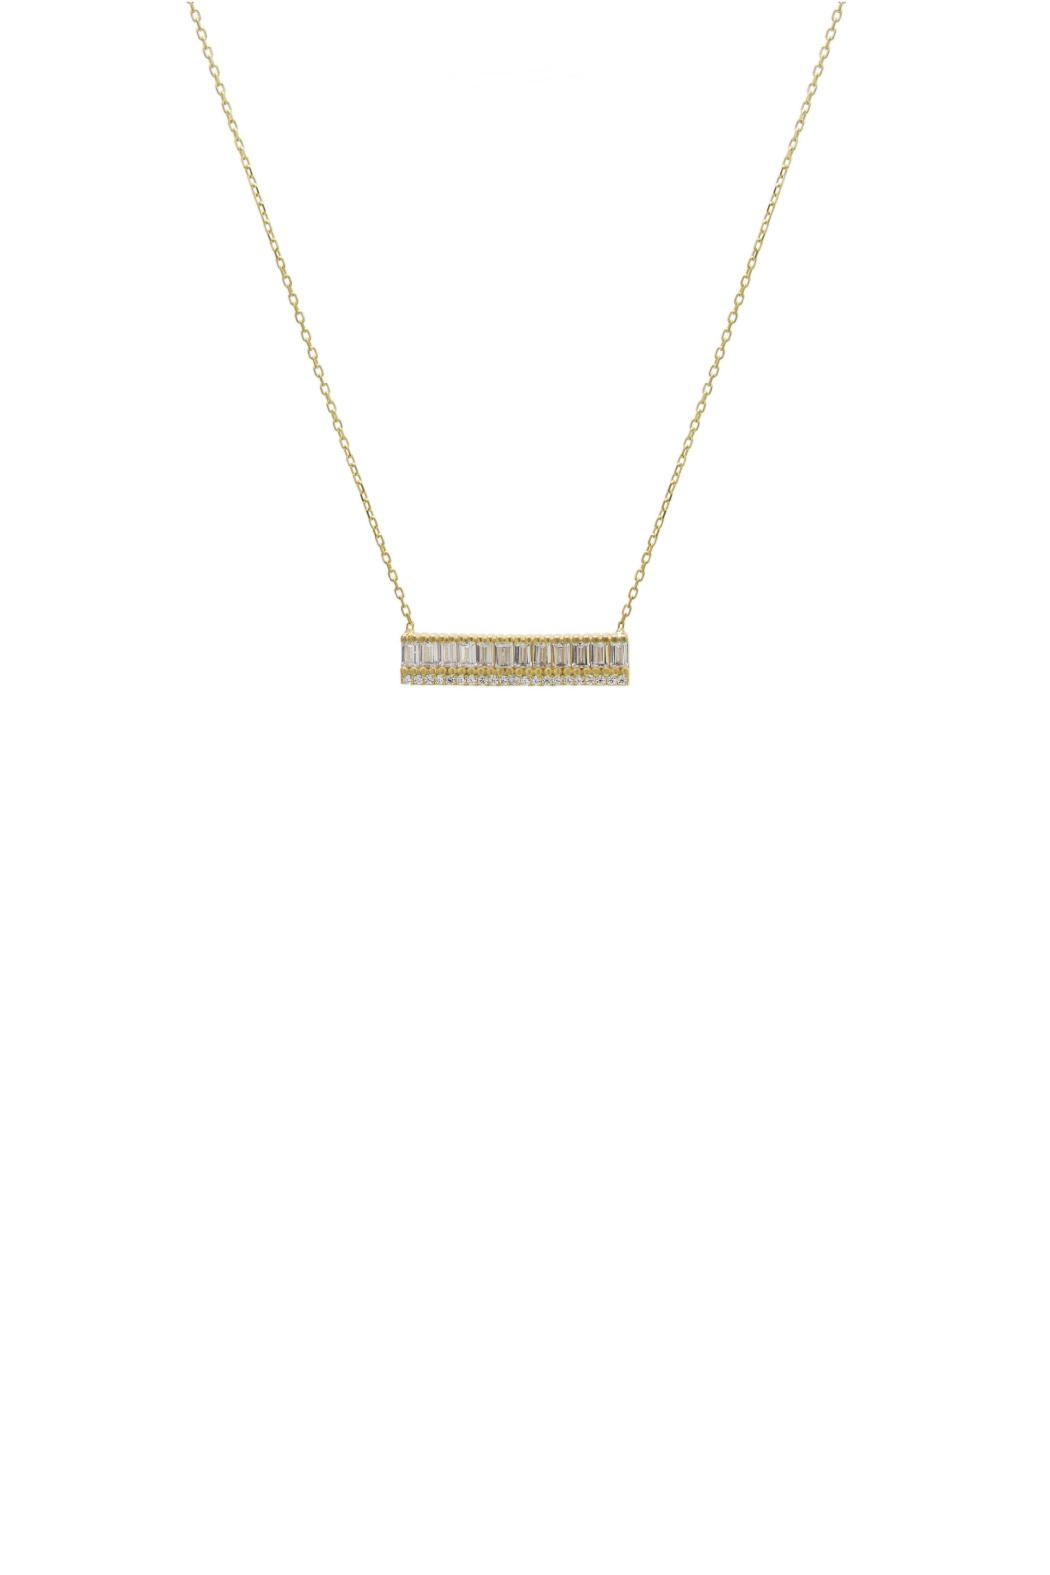 Gemma Collection Baguette Bar Necklace - Main Image